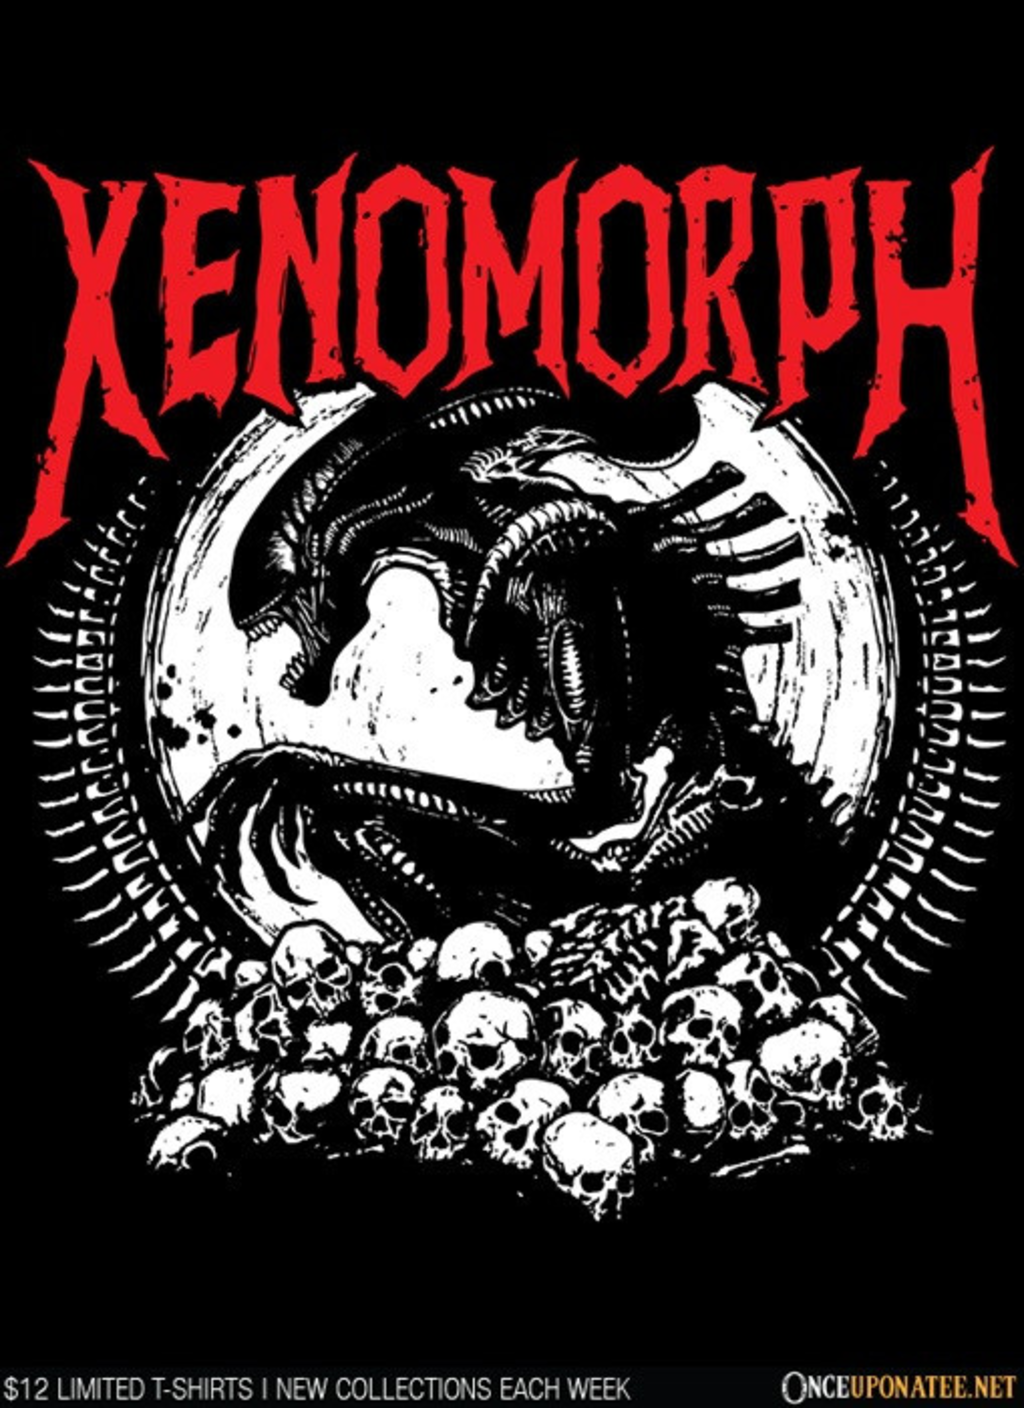 Once Upon a Tee: Xenomorph